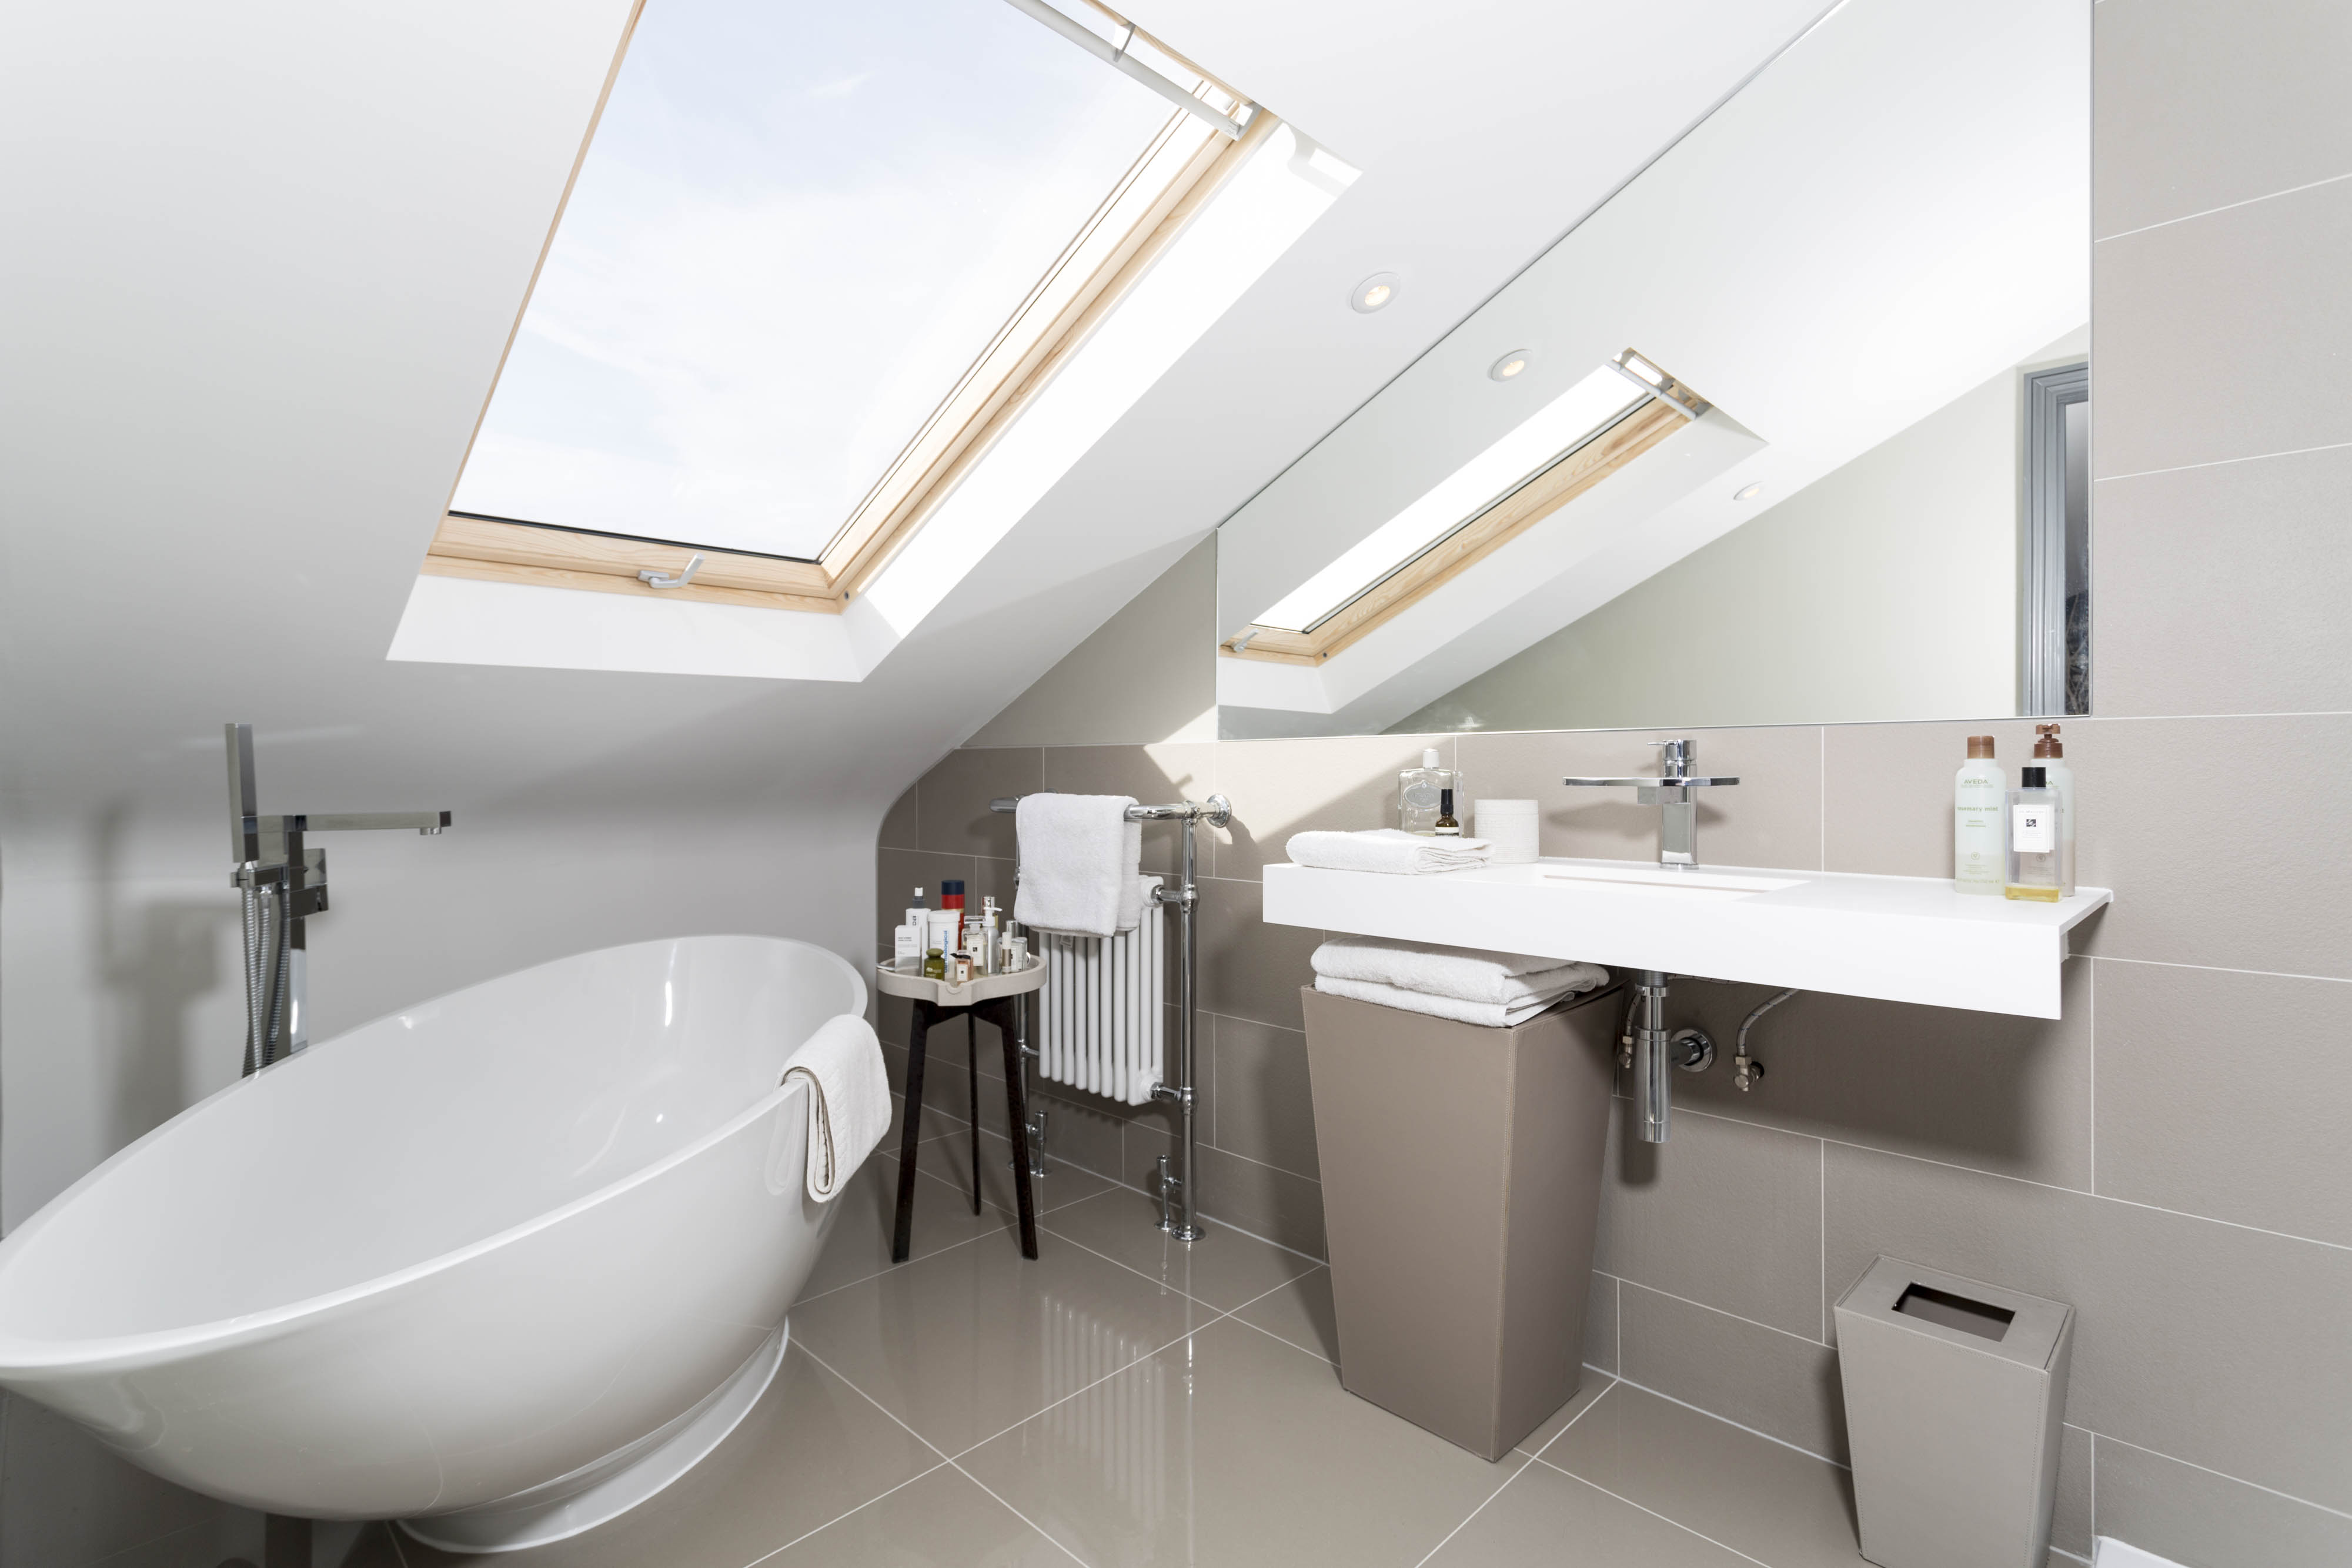 loft conversion bathroom ideas - Making the most of a small bathroom in a Loft